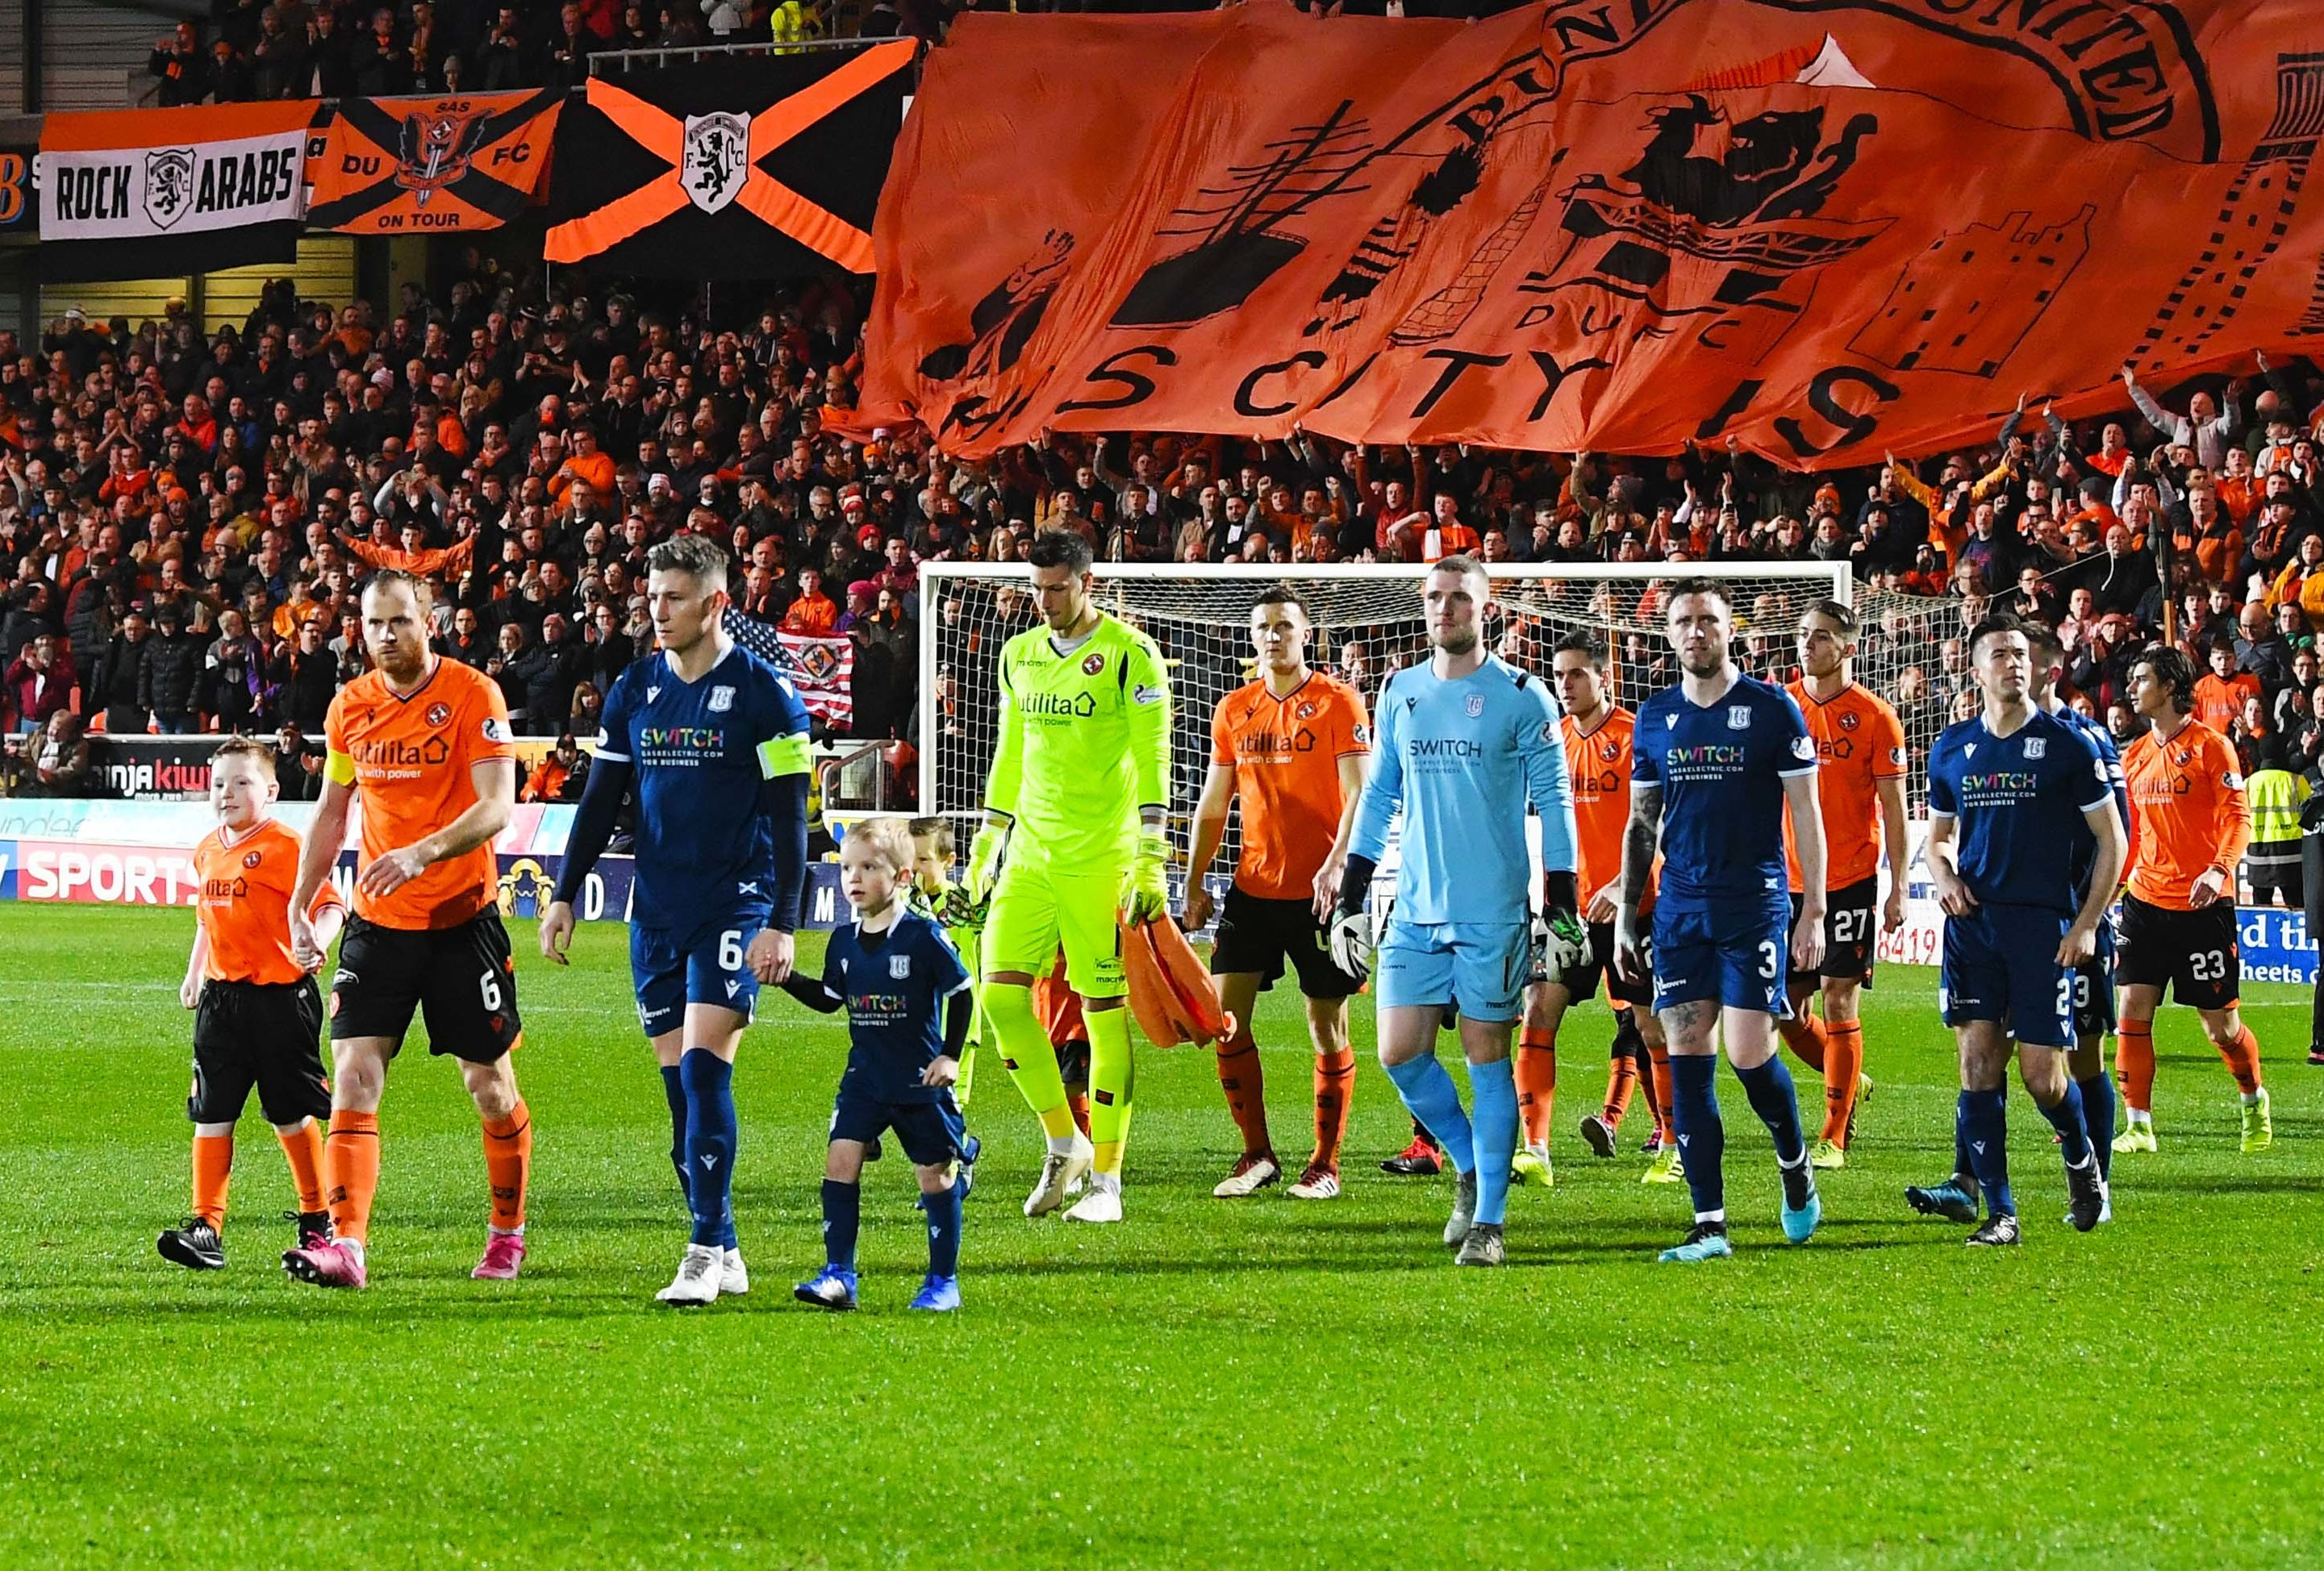 The teams walk out for kick-off.